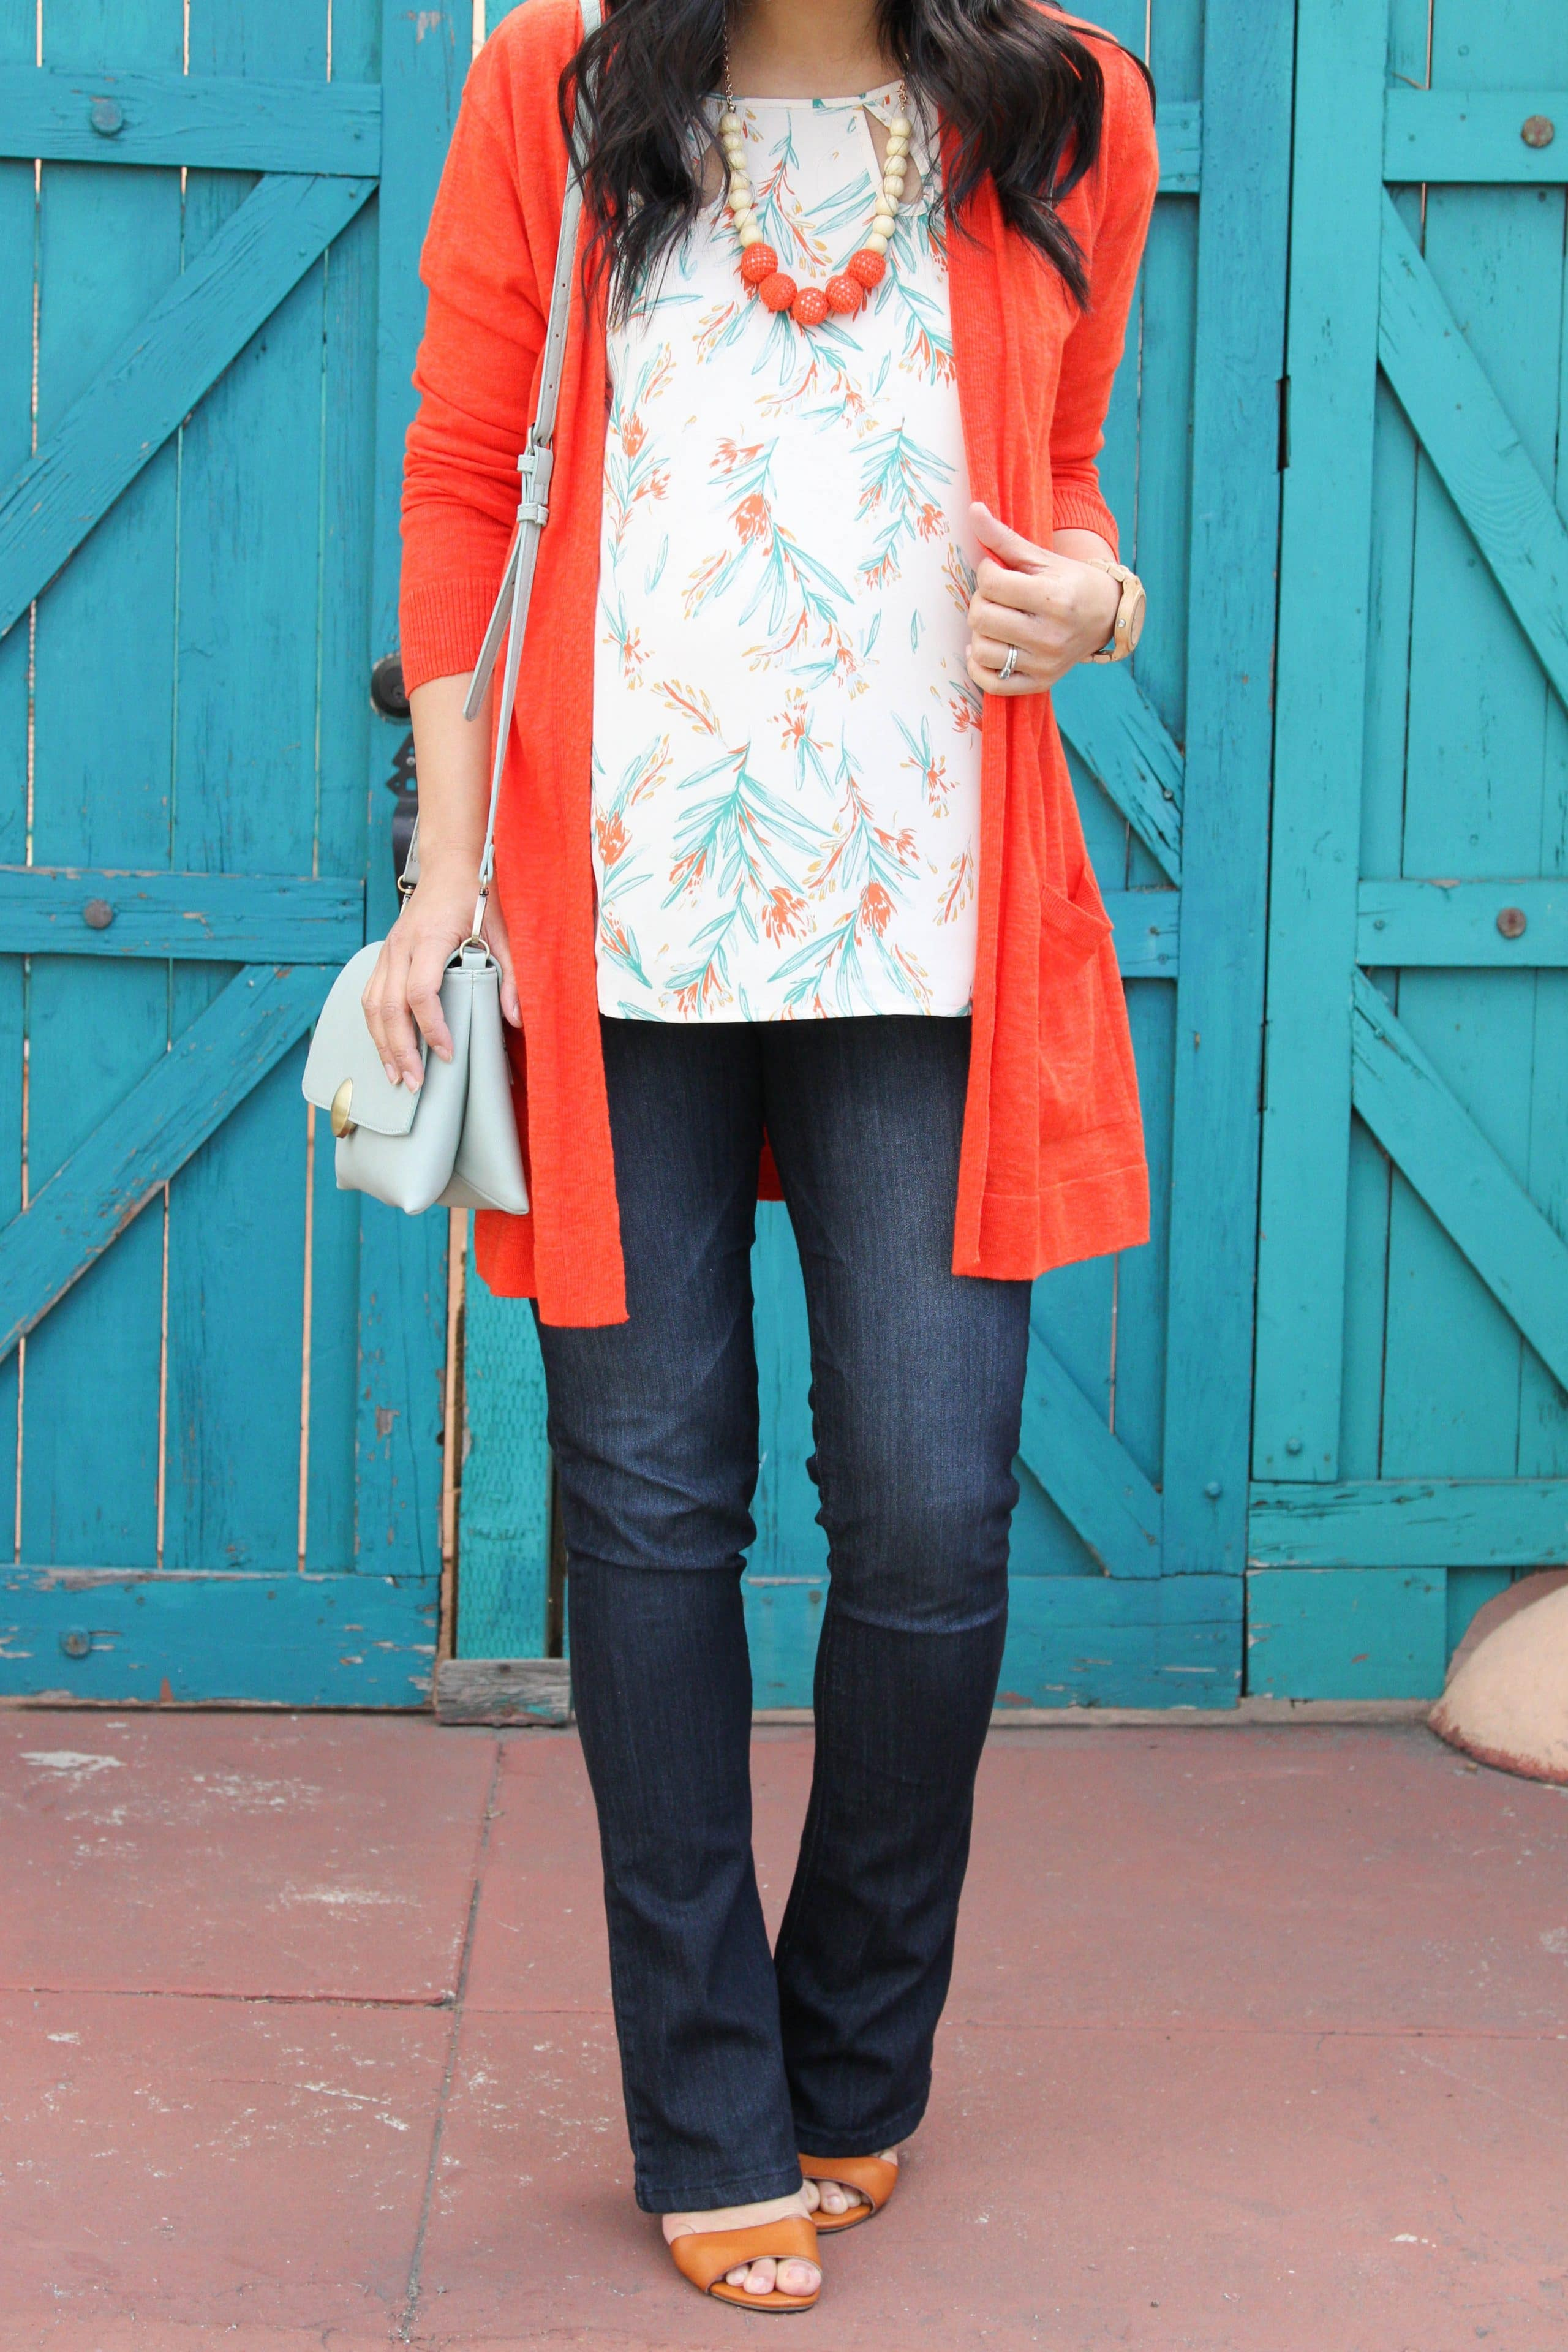 Orange Cardi + Floral Top + Statement Necklace + Bootcut Jeans + Mint Bag